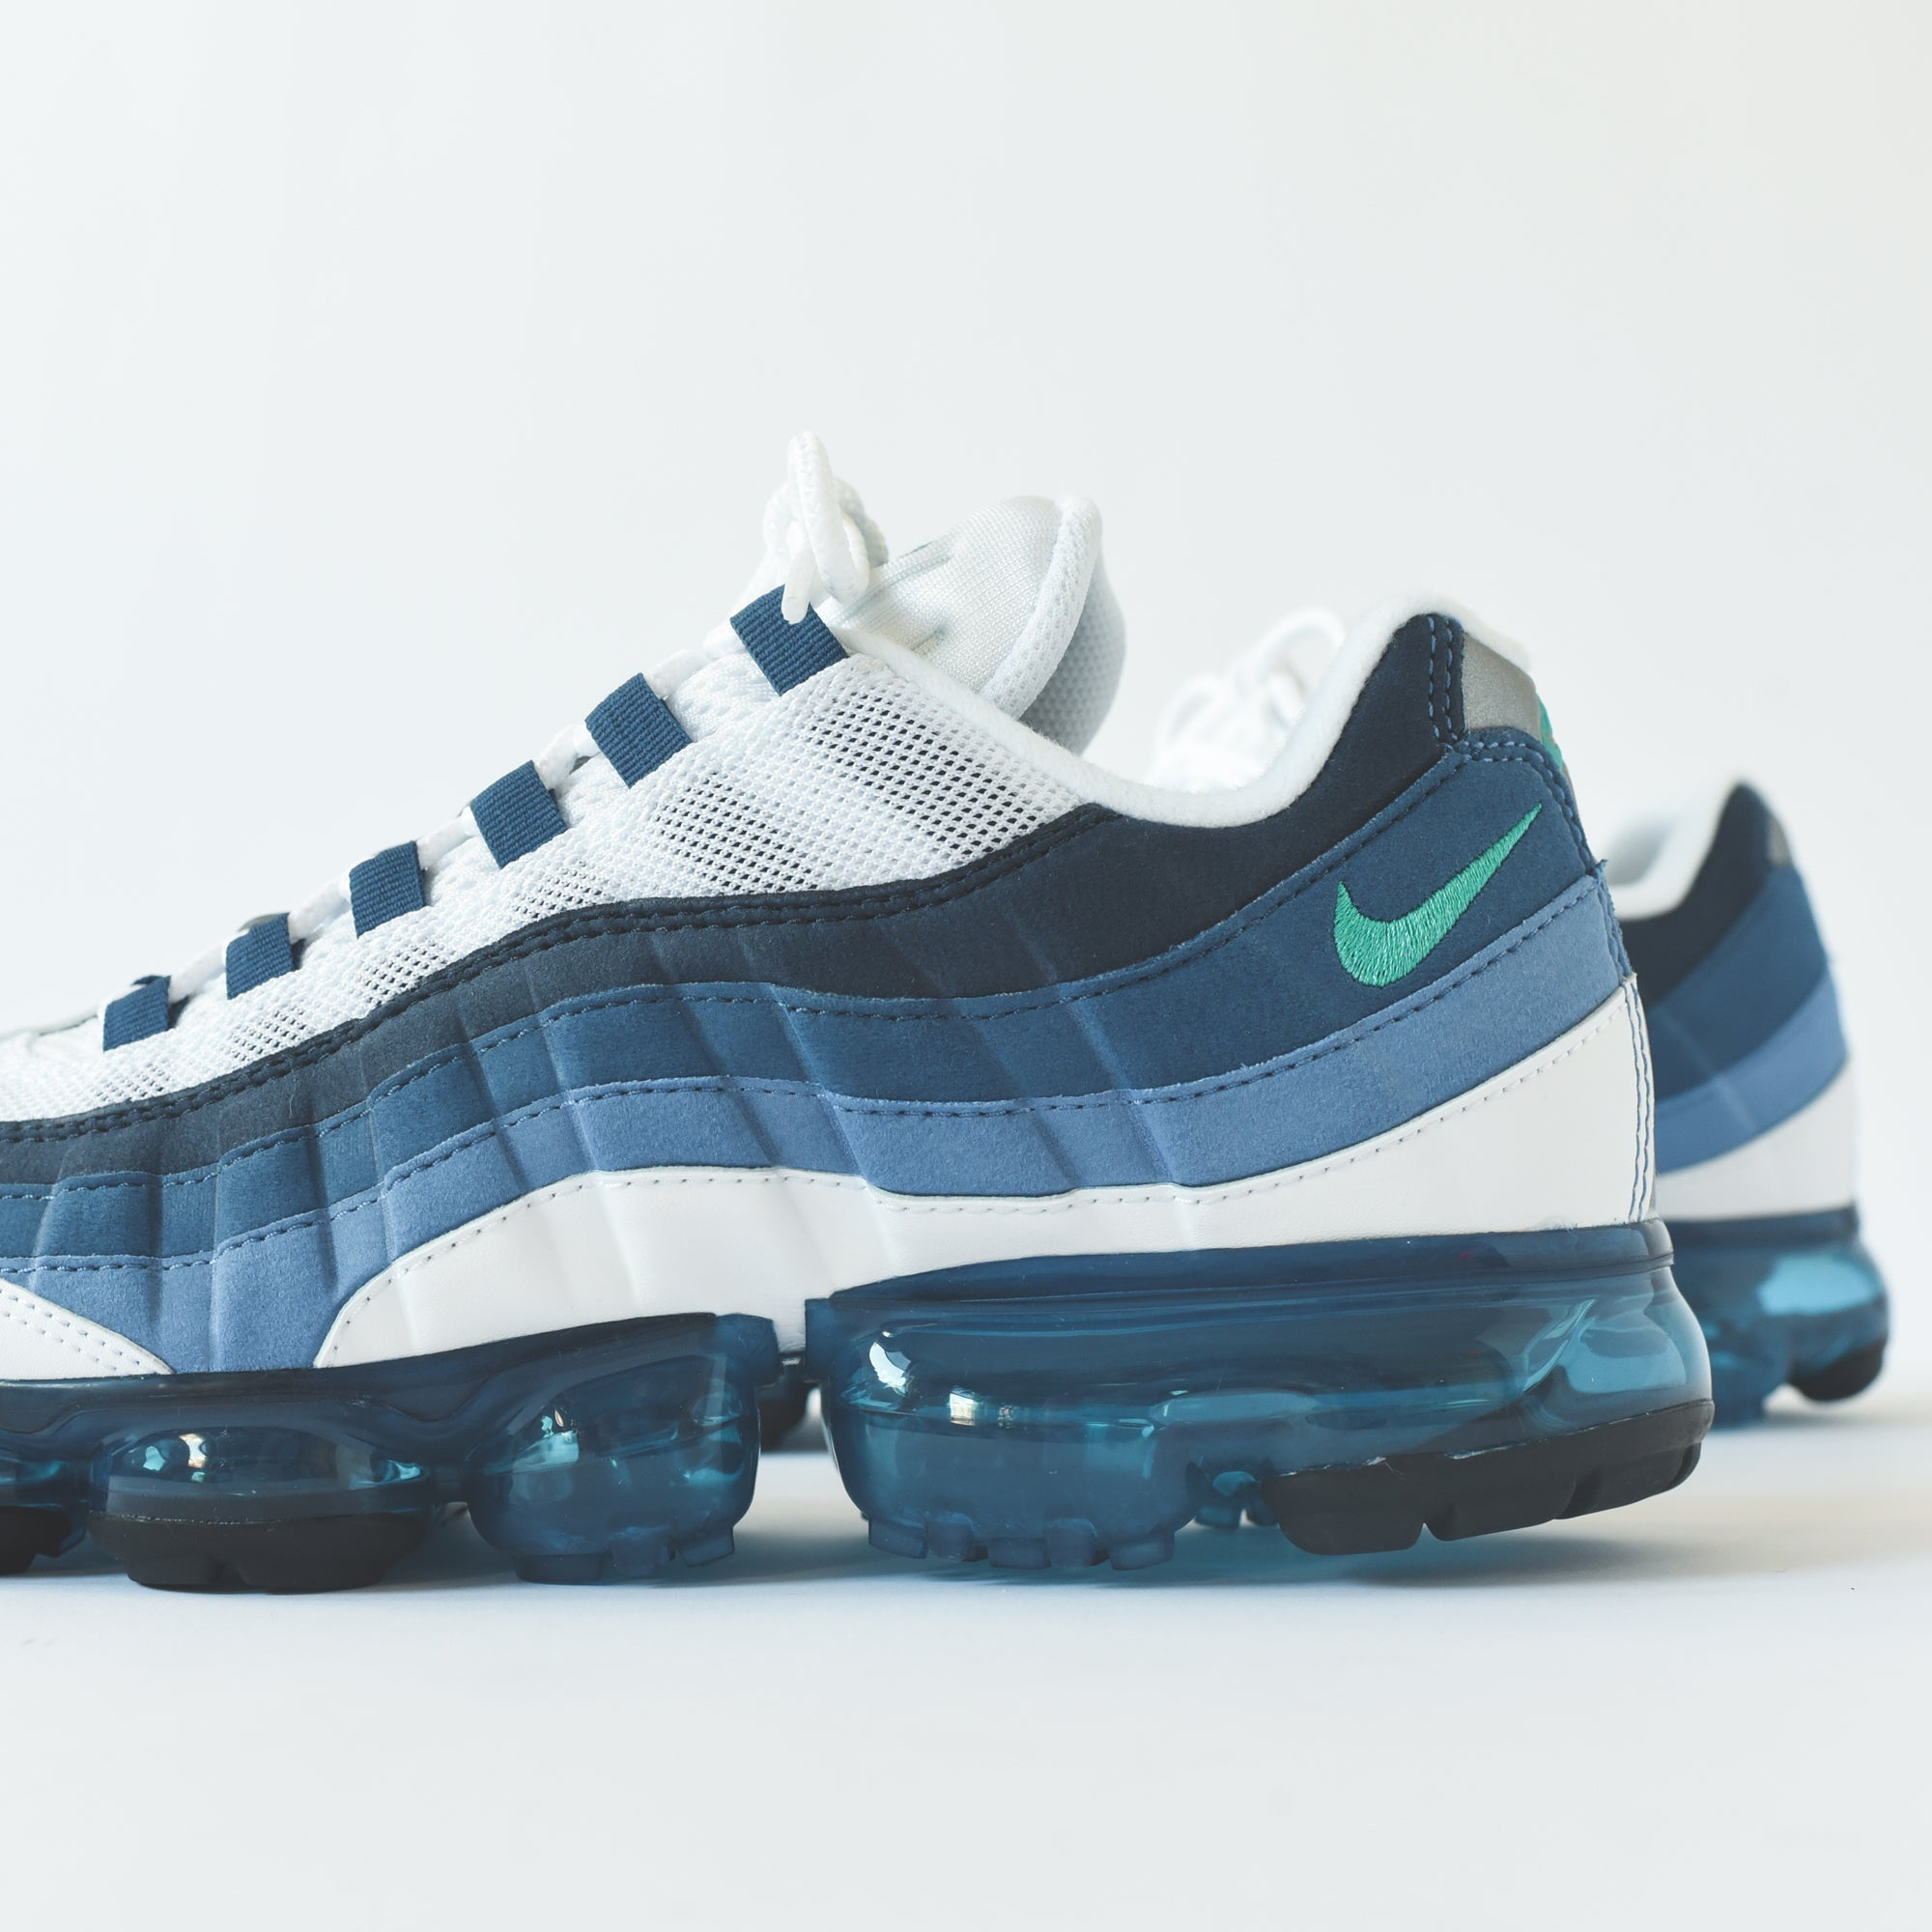 78c7f67174 Nike Air VaporMax '95 - White / New Green / French Blue Lake. September 06,  2018. -3